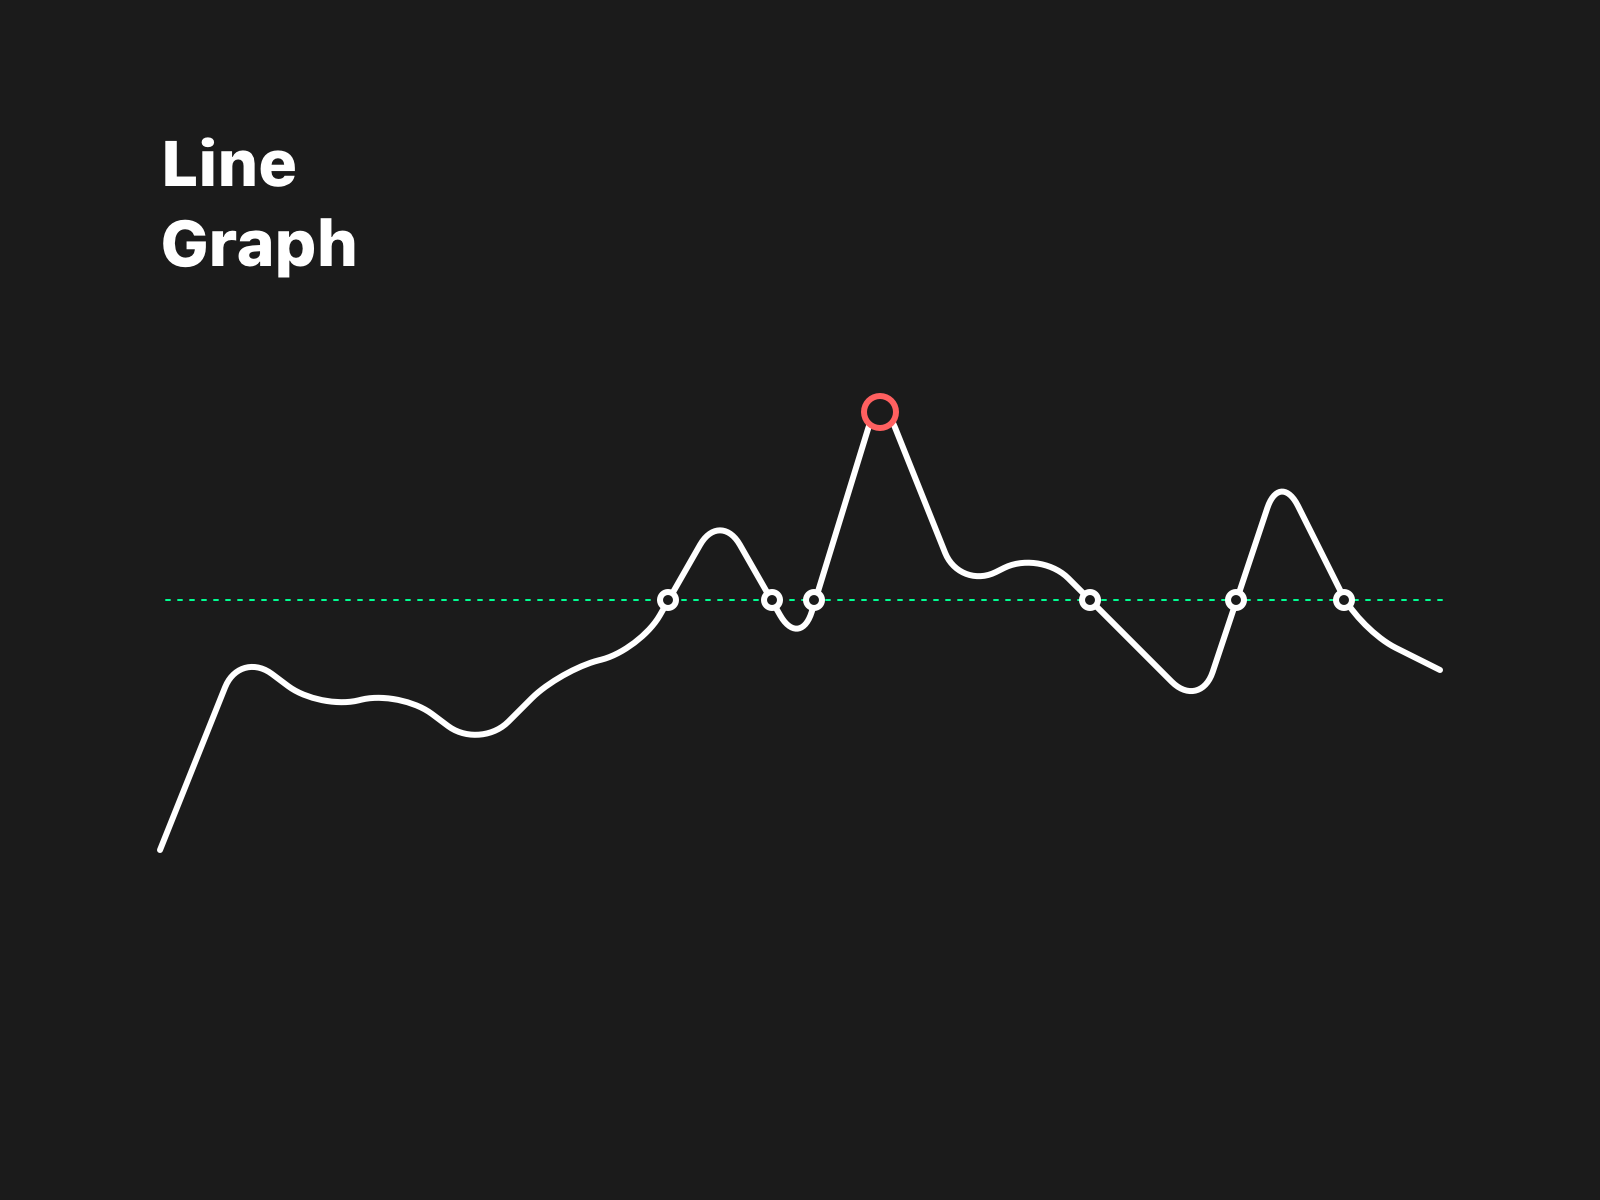 1600x1200 Sketch Line Graph Trick Using Line Tool And Prototypr